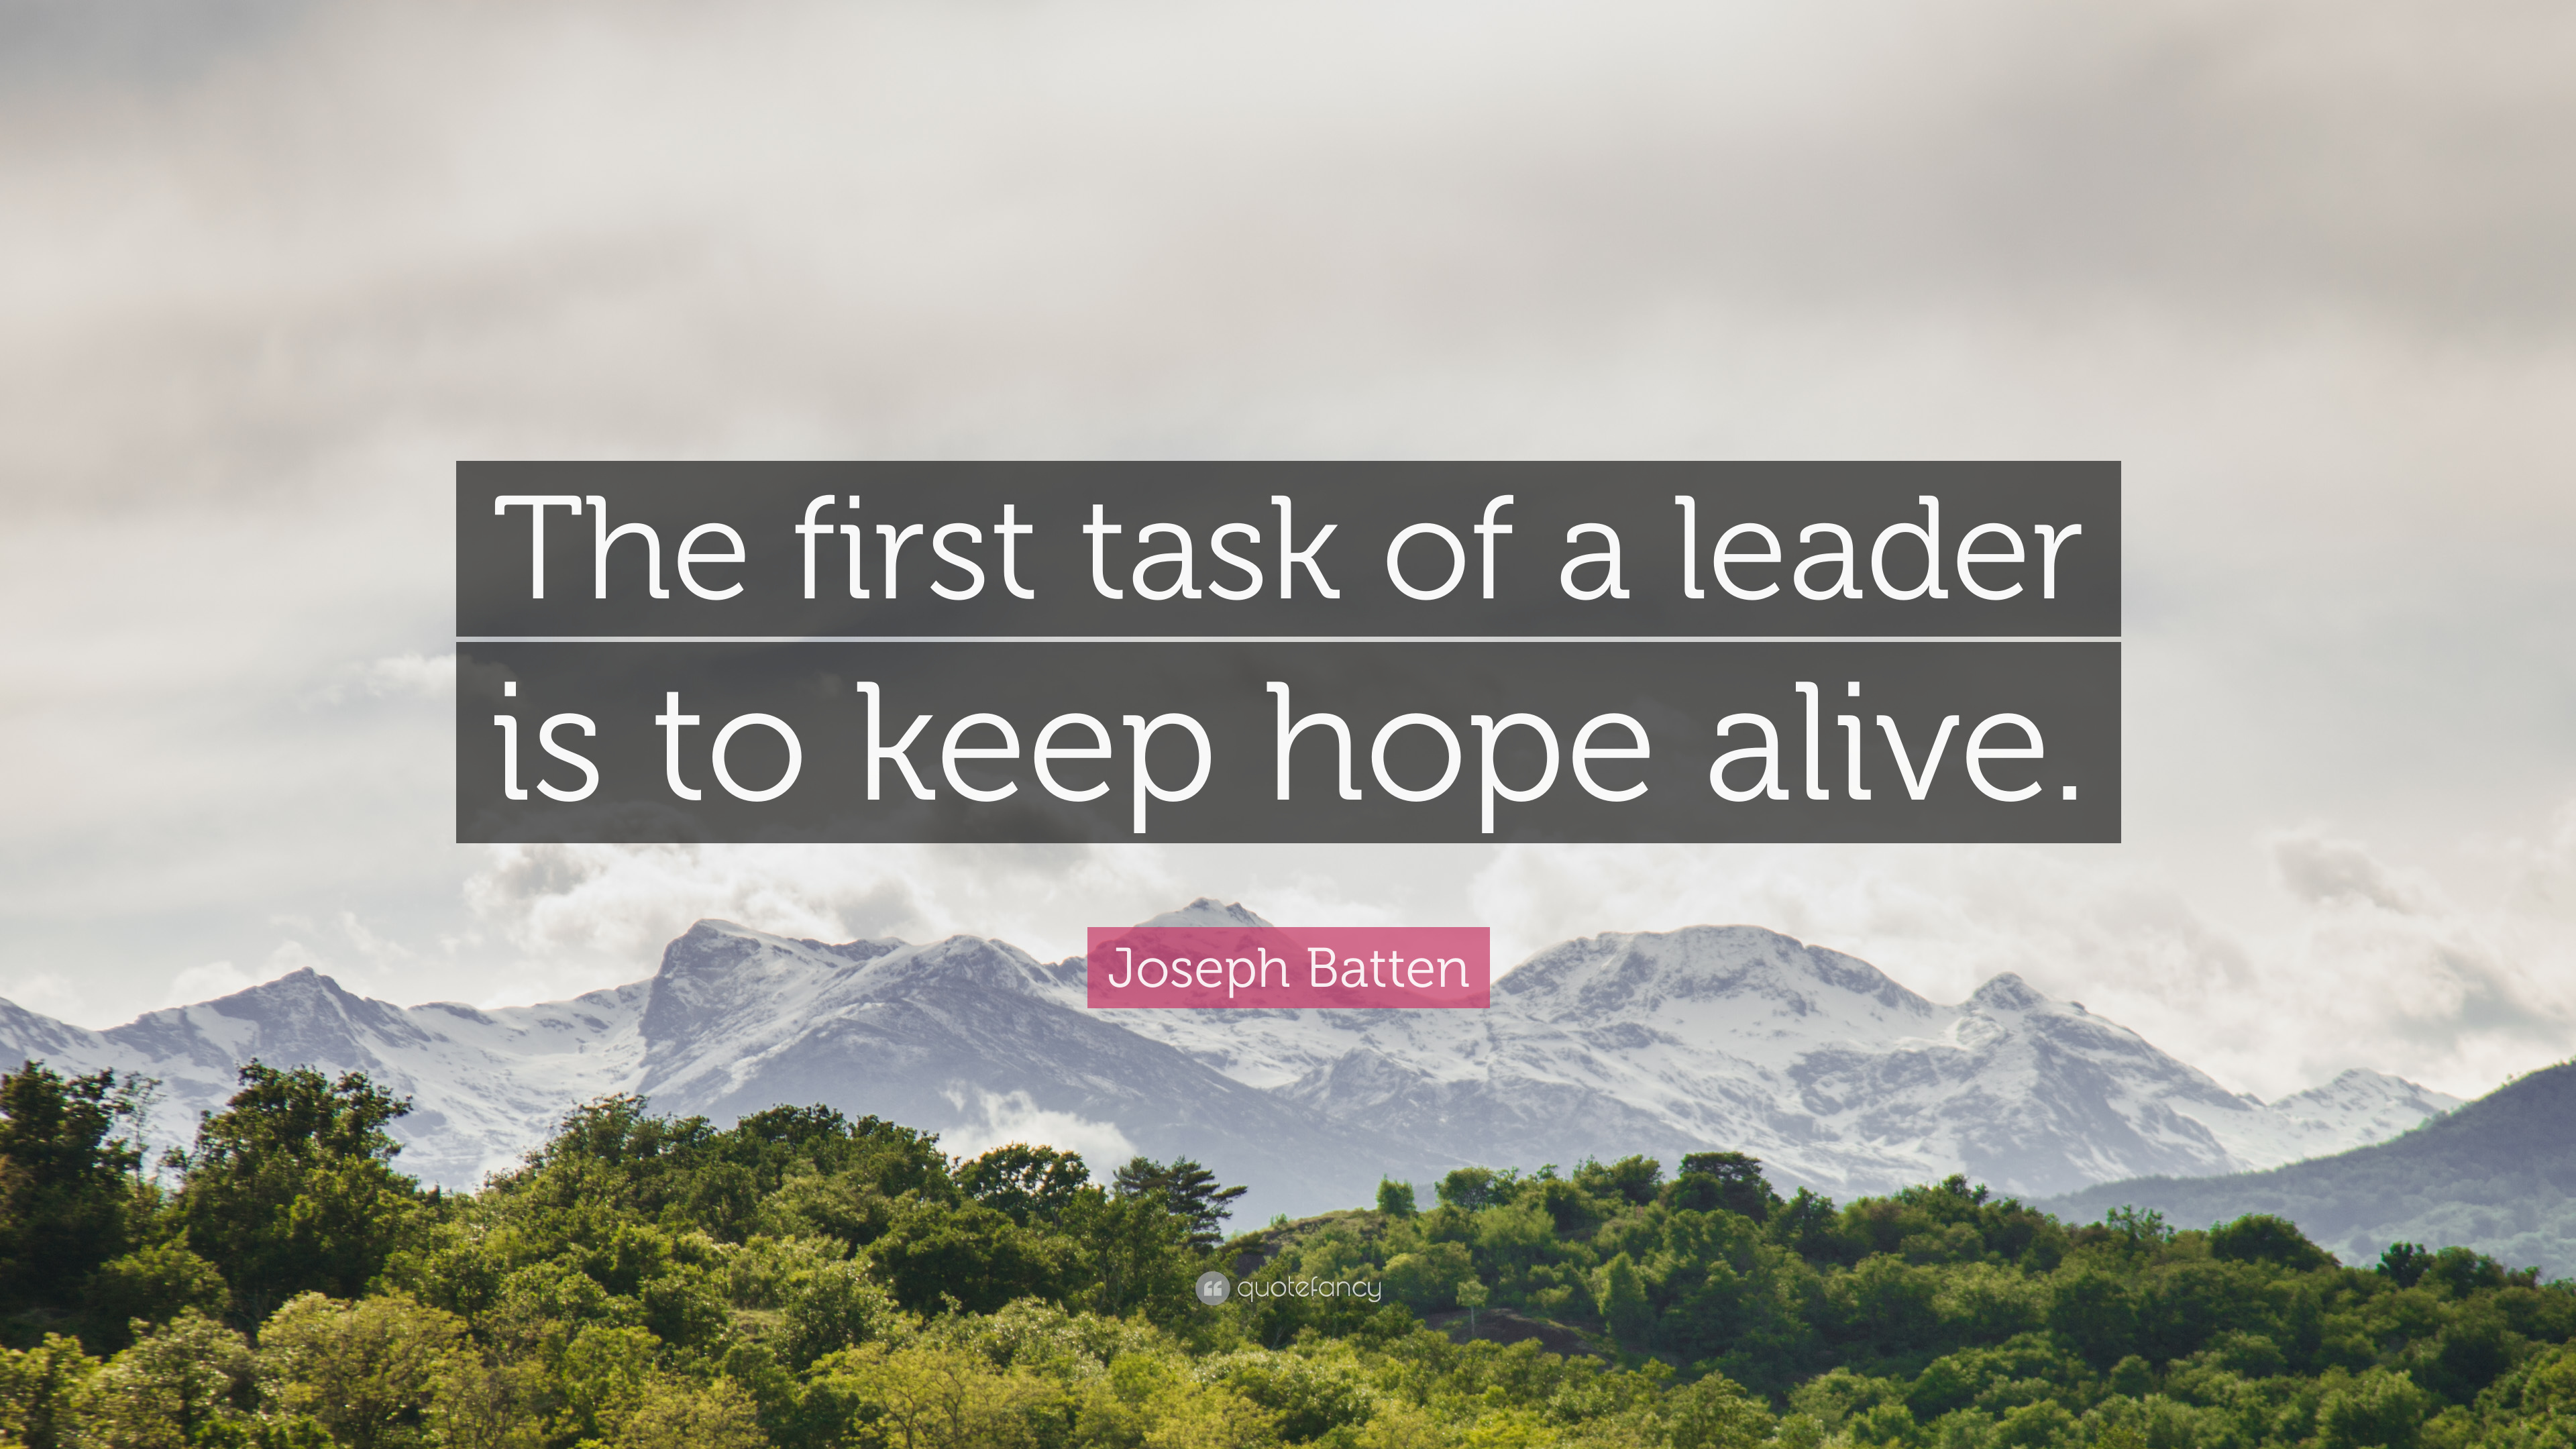 joseph batten quote the first task of a leader is to keep hope alive